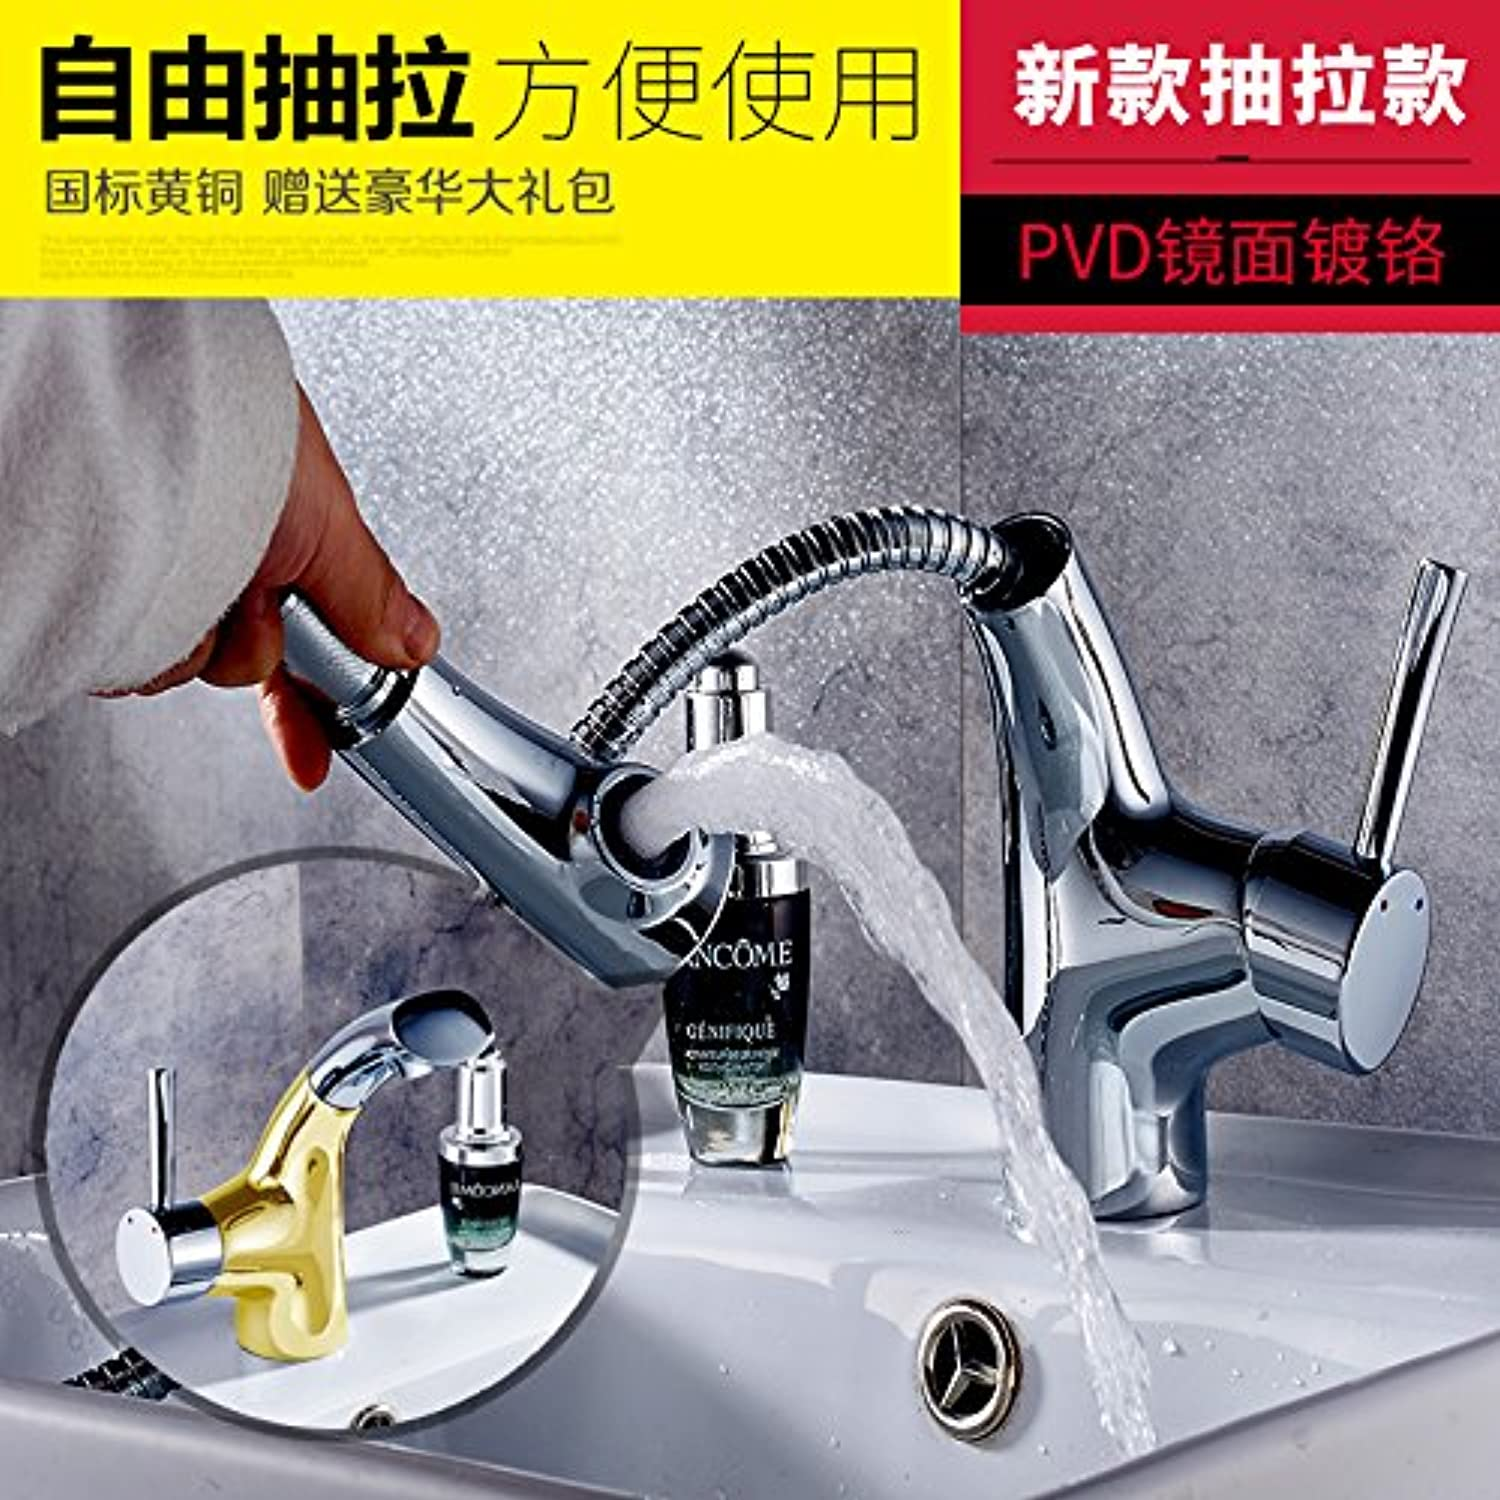 LHbox Basin Mixer Tap Bathroom Sink Faucet All copper pull faucet telescopic basin mixer redation stretch can be hot and cold showers shampooing, pull-down